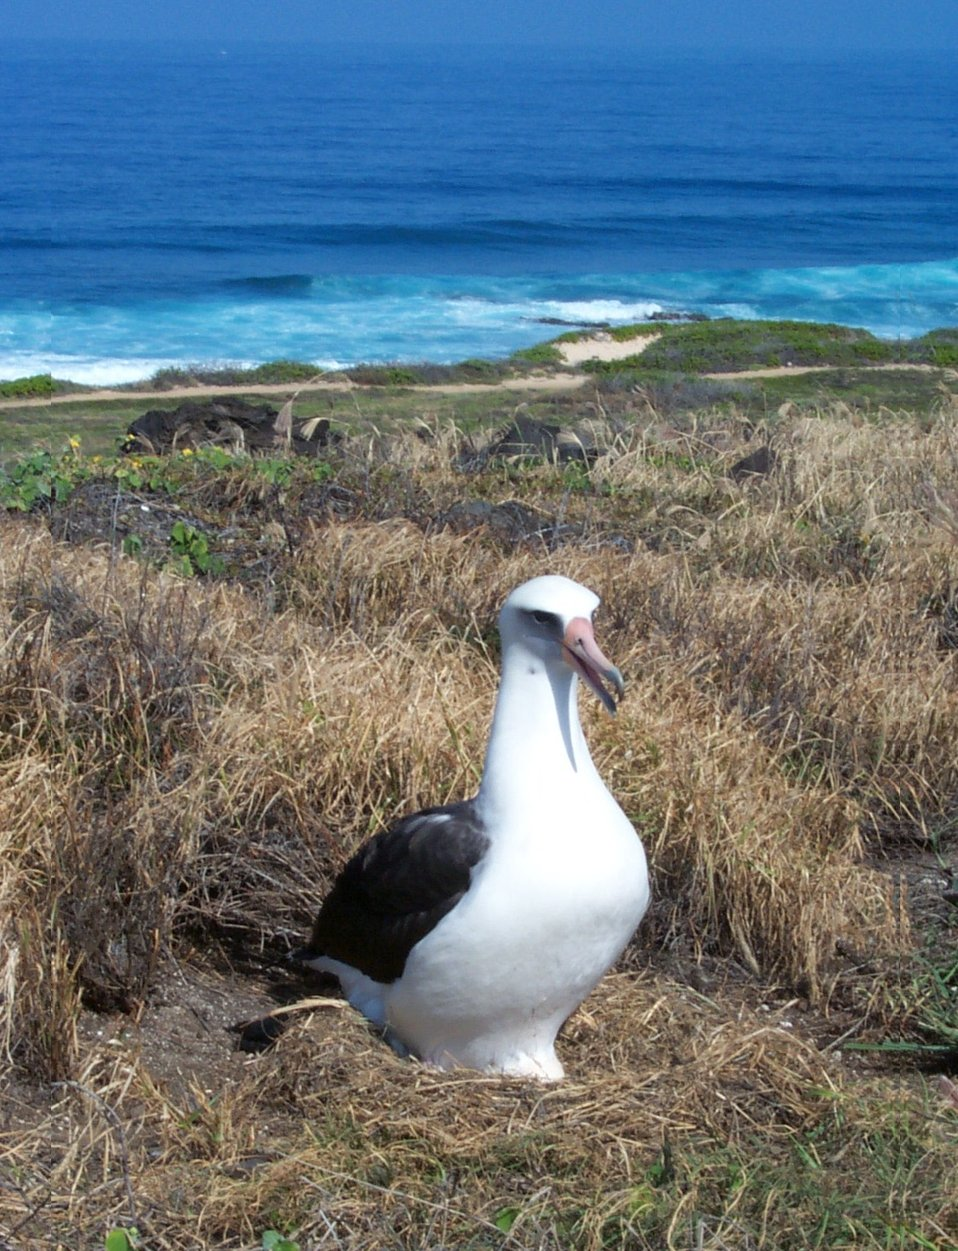 Laysan albatross, Credit USFWS Chris Swenson